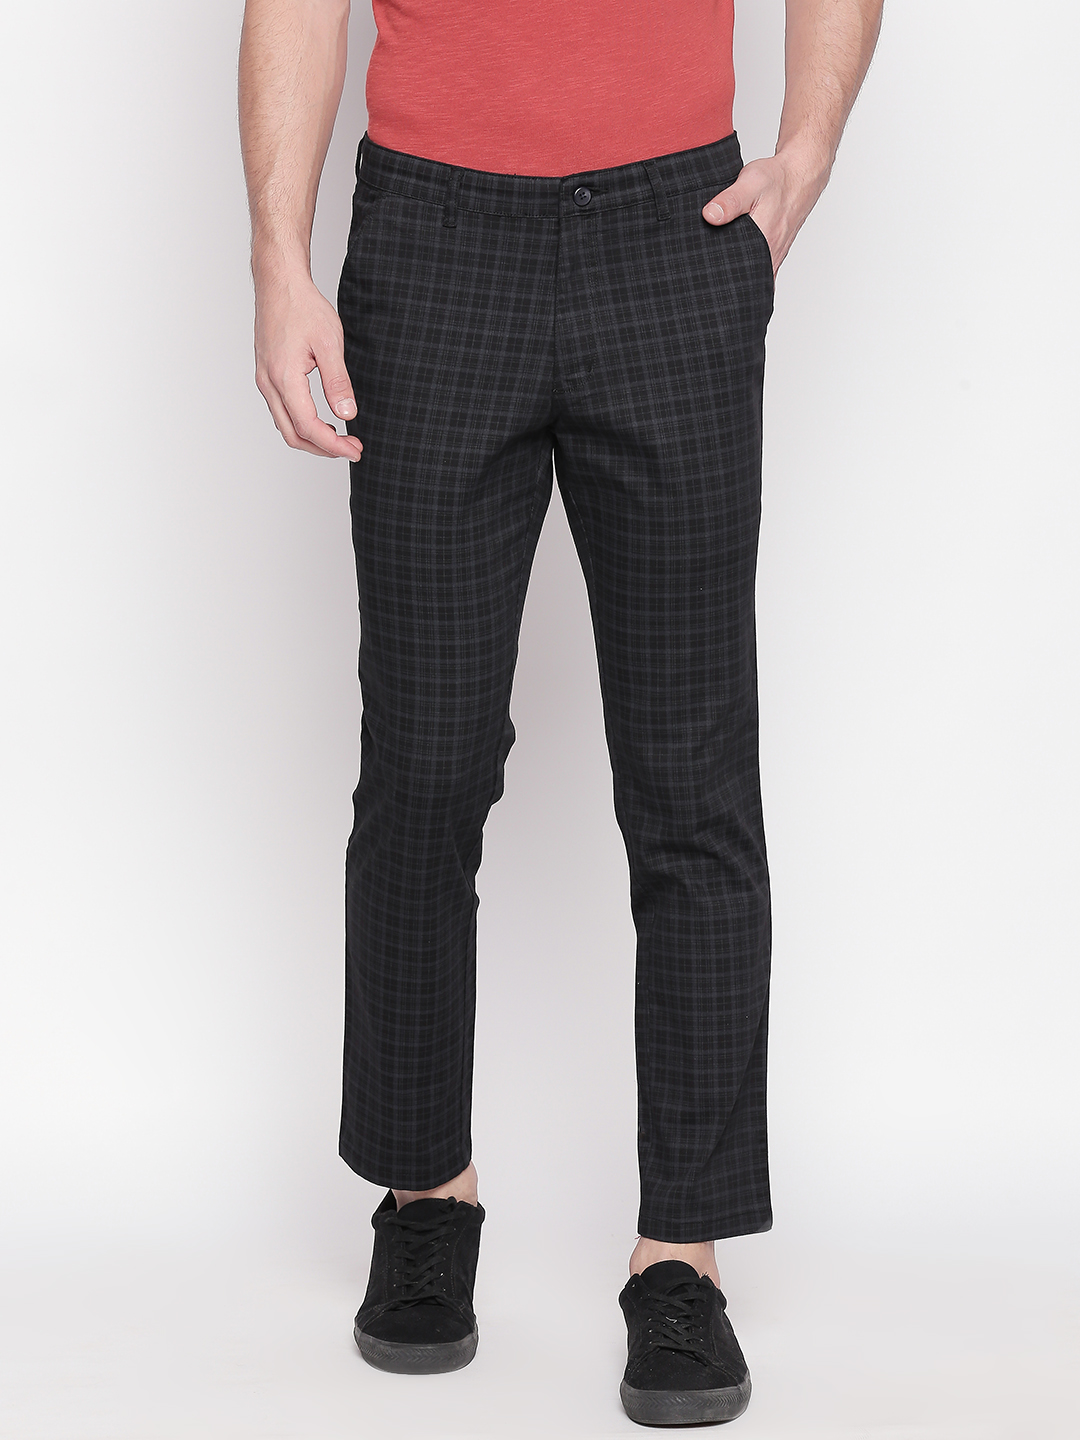 SOLEMIO   Solemio Cotton Blend Ankle Length Chinos For Mens